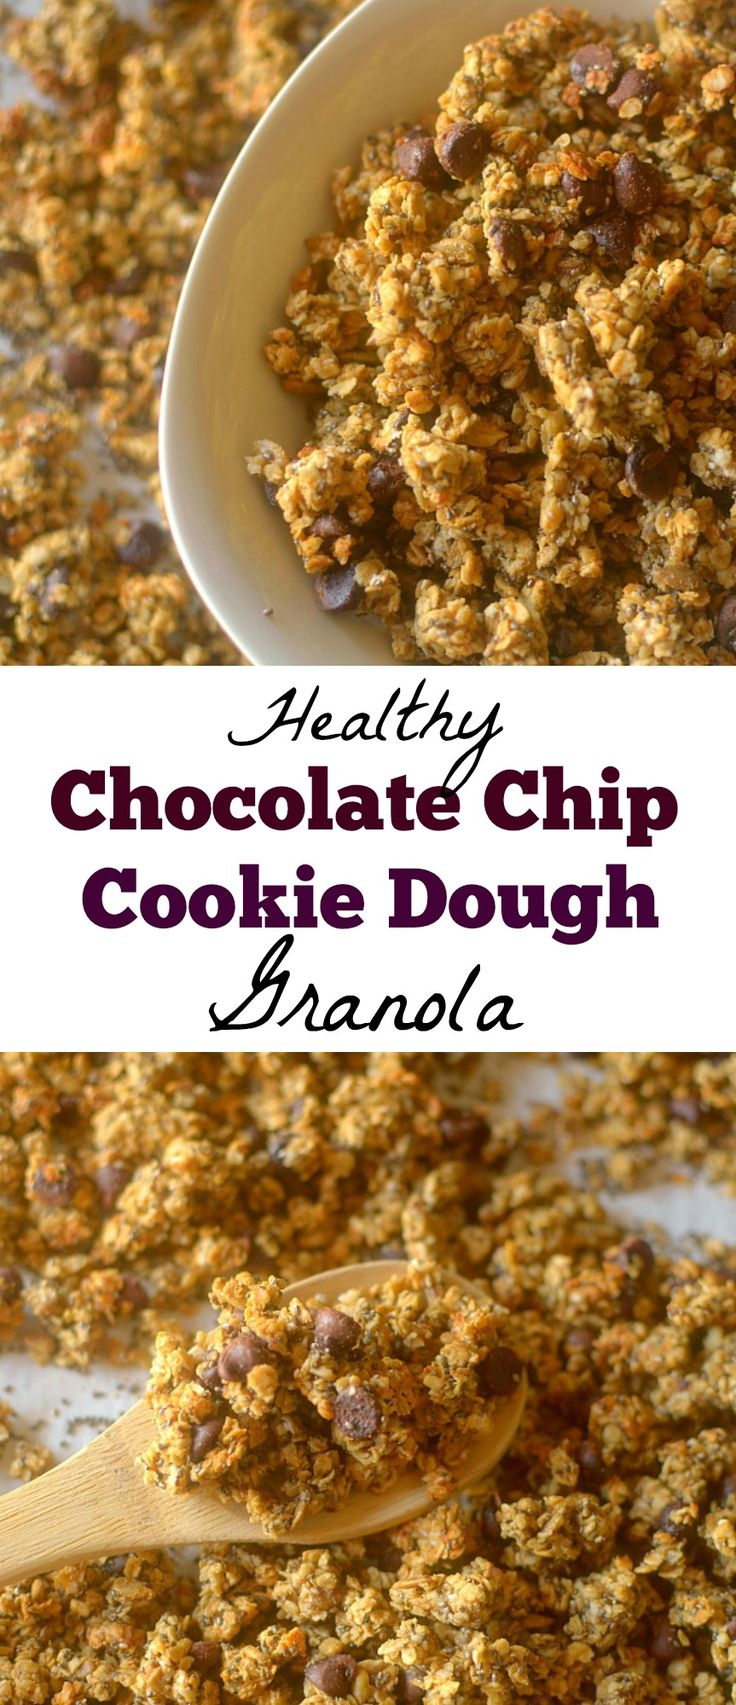 Looking for a healthy breakfast that will satisfy your sweet tooth? Make this easy-to-make Chocolate Chip Cookie Dough Granola! Gluten-free + Vegan friendly